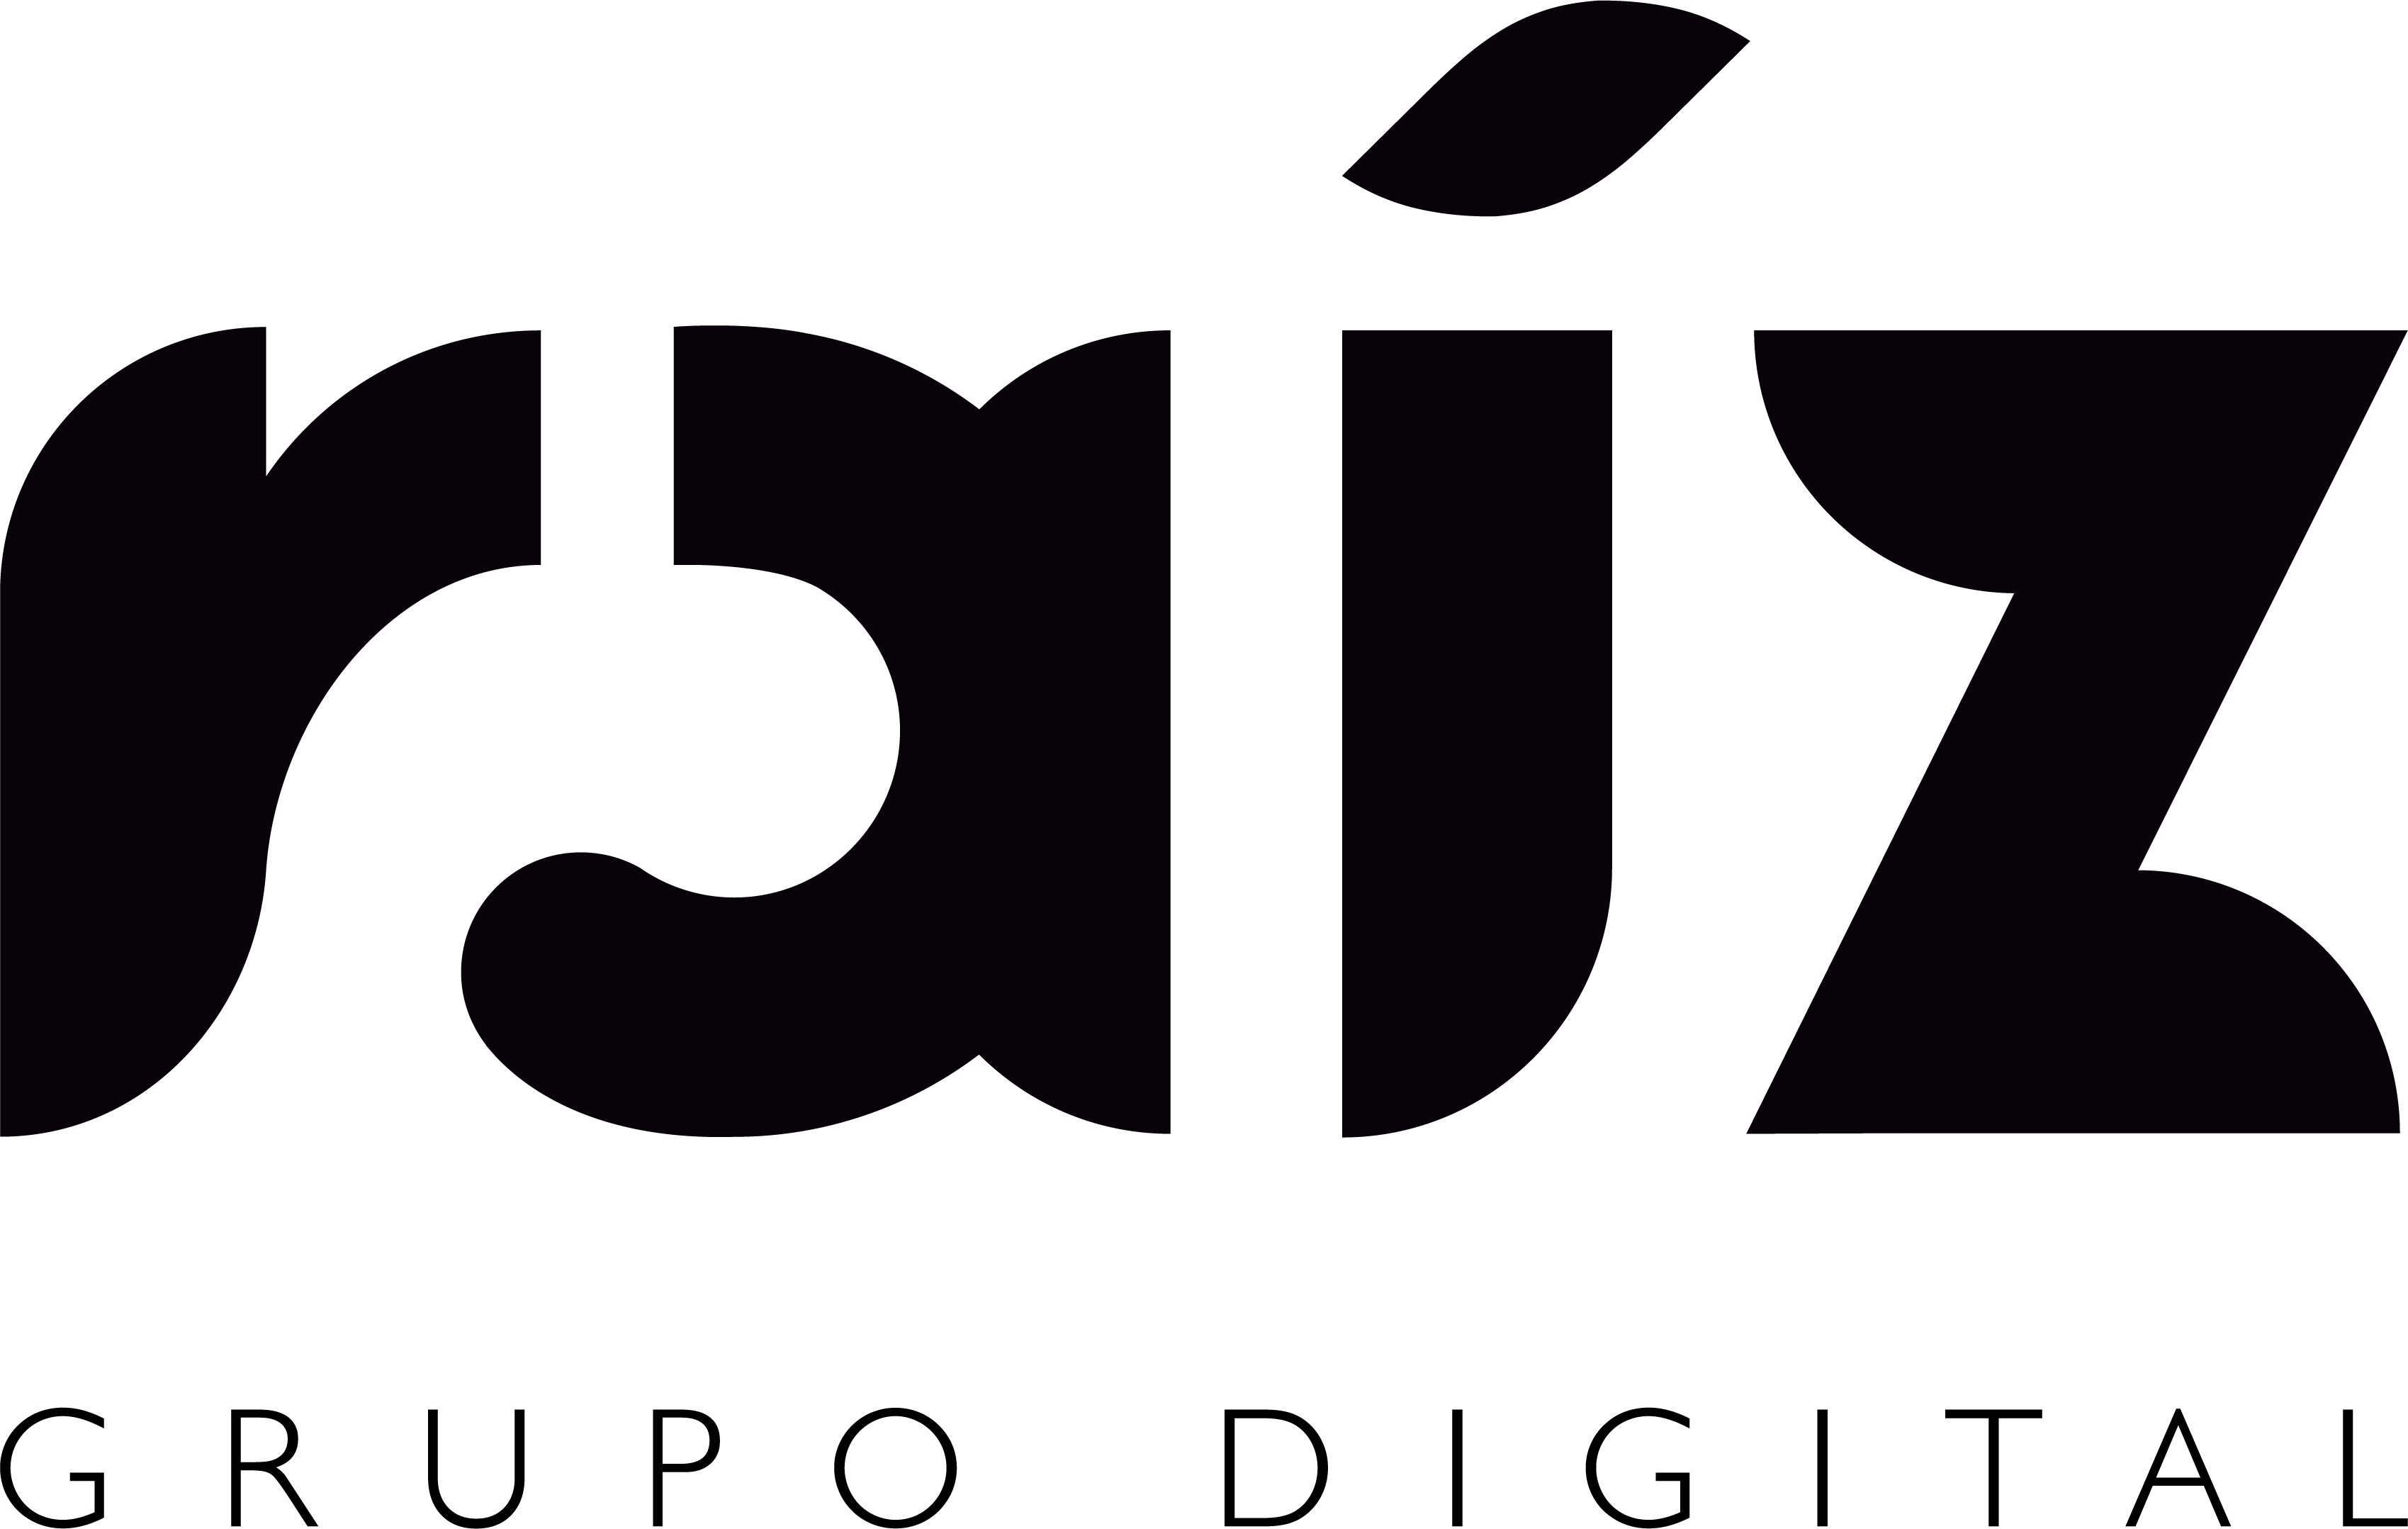 Logotipo Grupo Raíz Digital